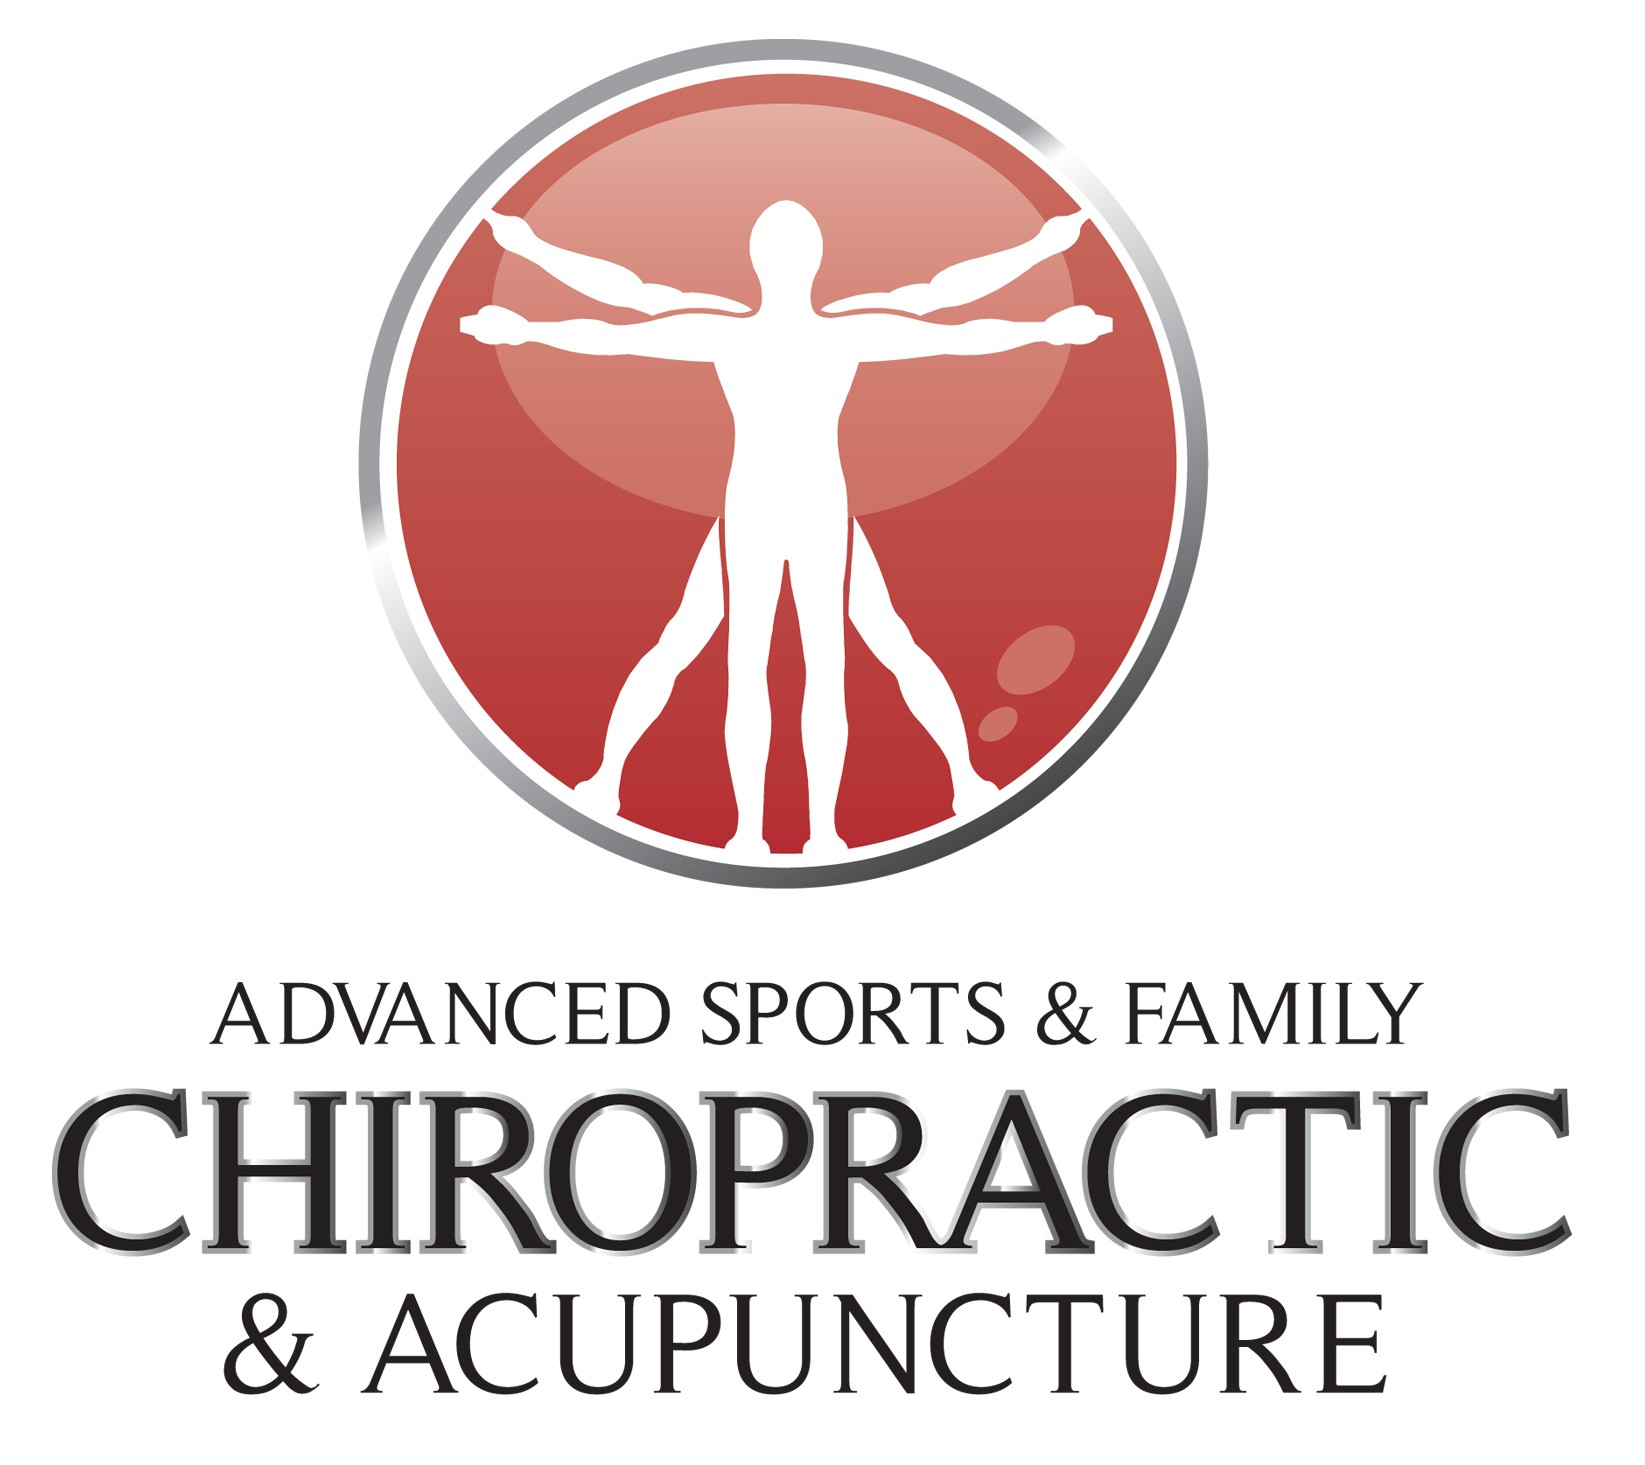 Advanced Sports & Family Chiropractic